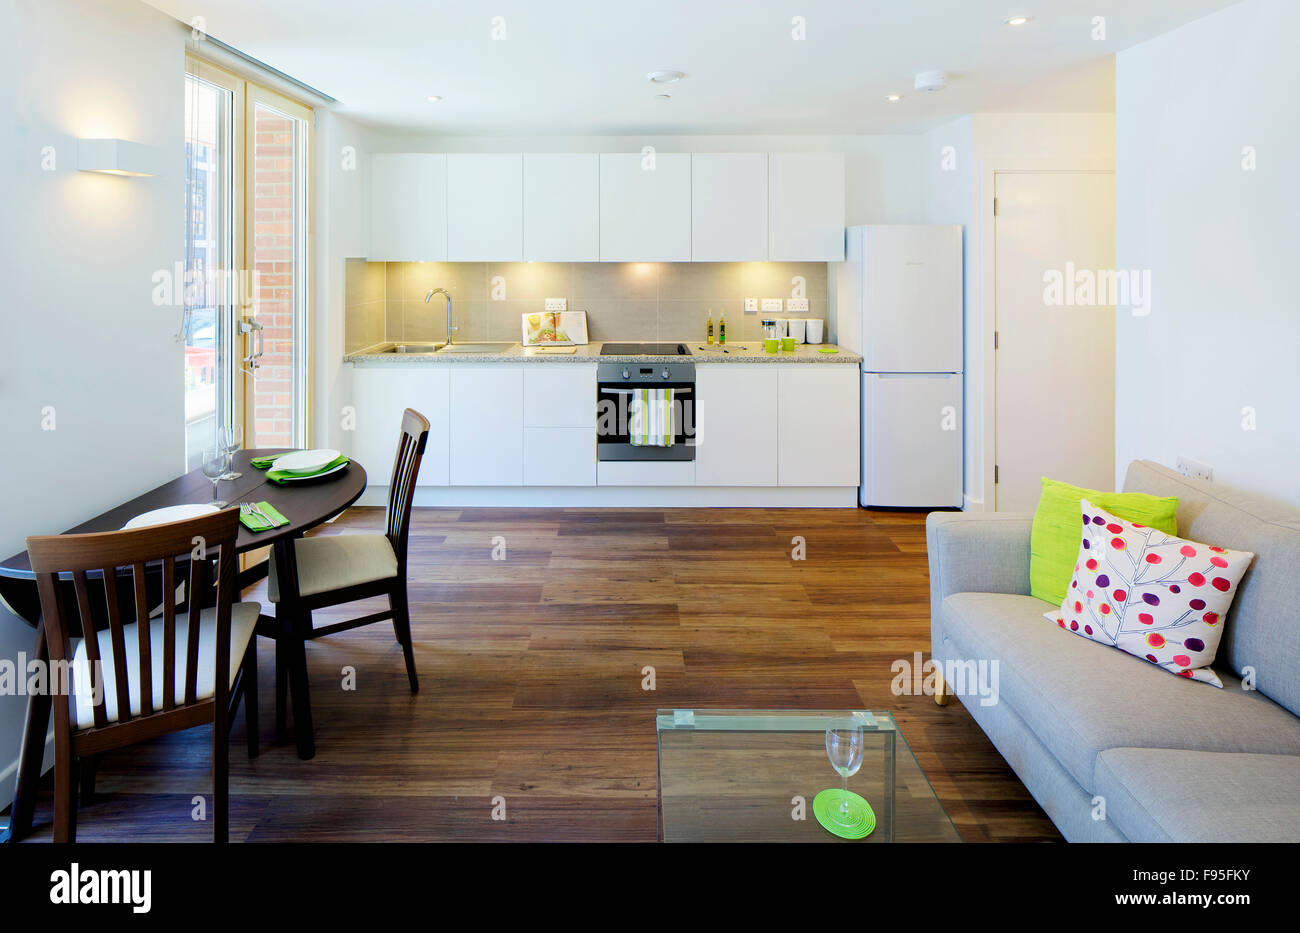 one church square, london, uk. view of an open plan kitchen and